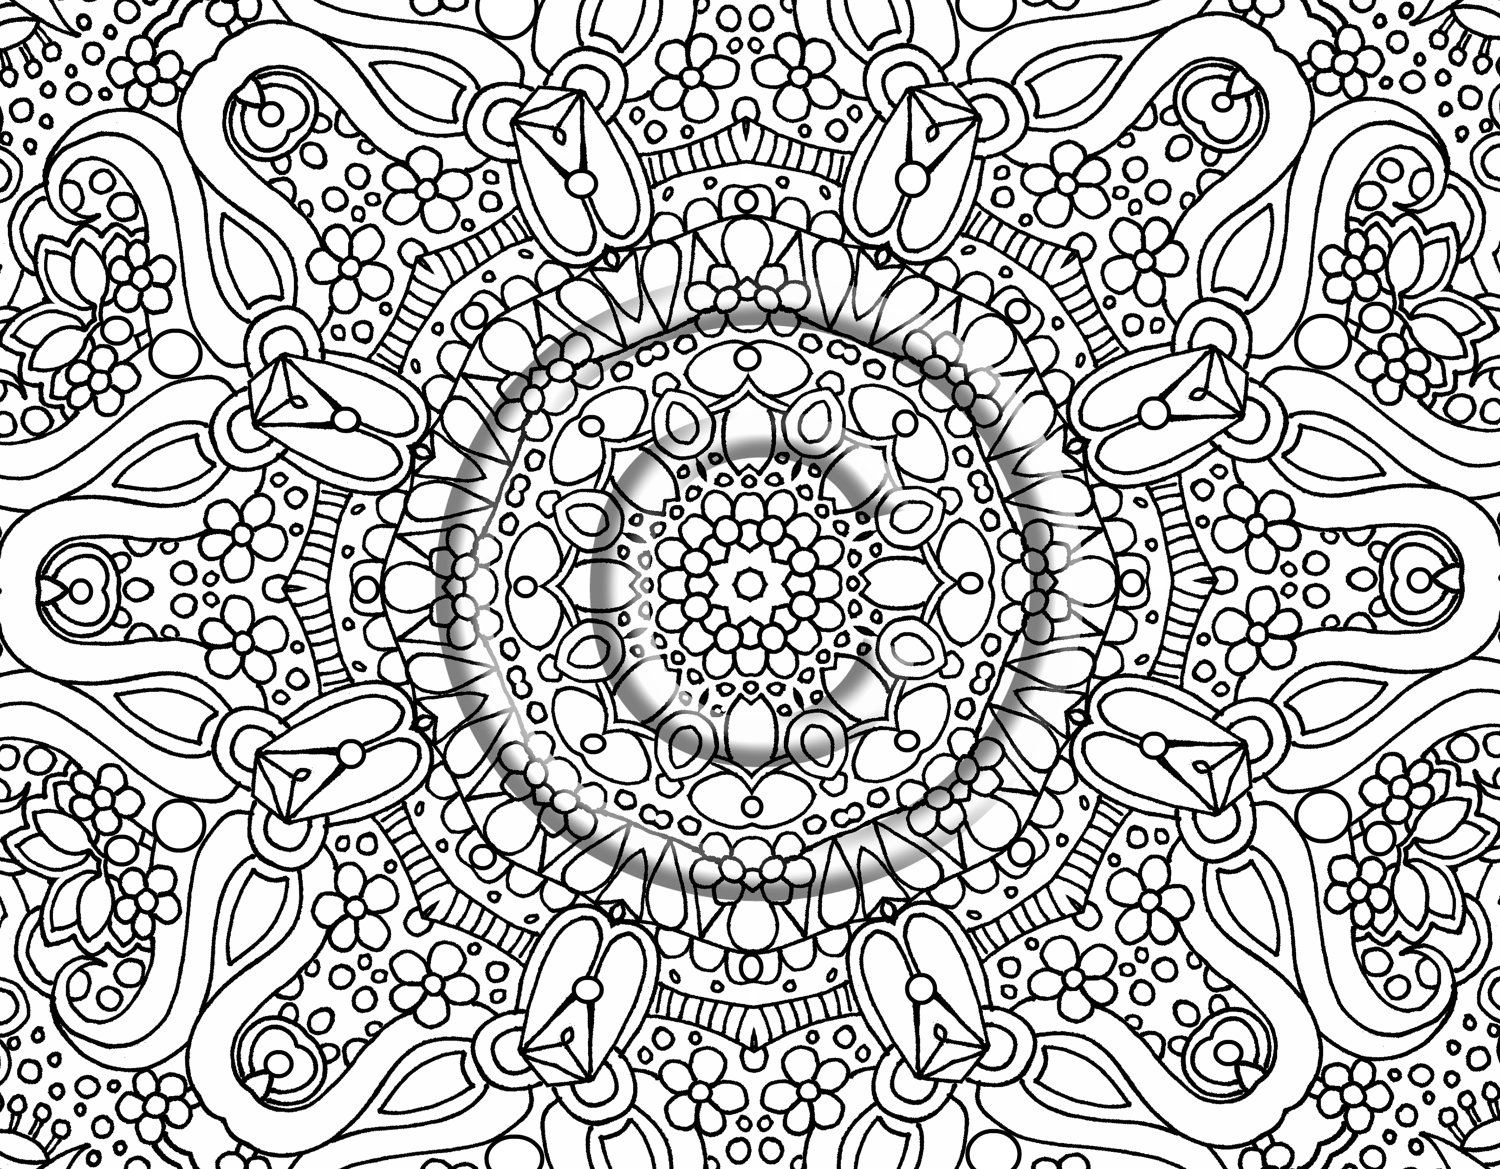 hard coloring pages - Printable Abstract Coloring Pages